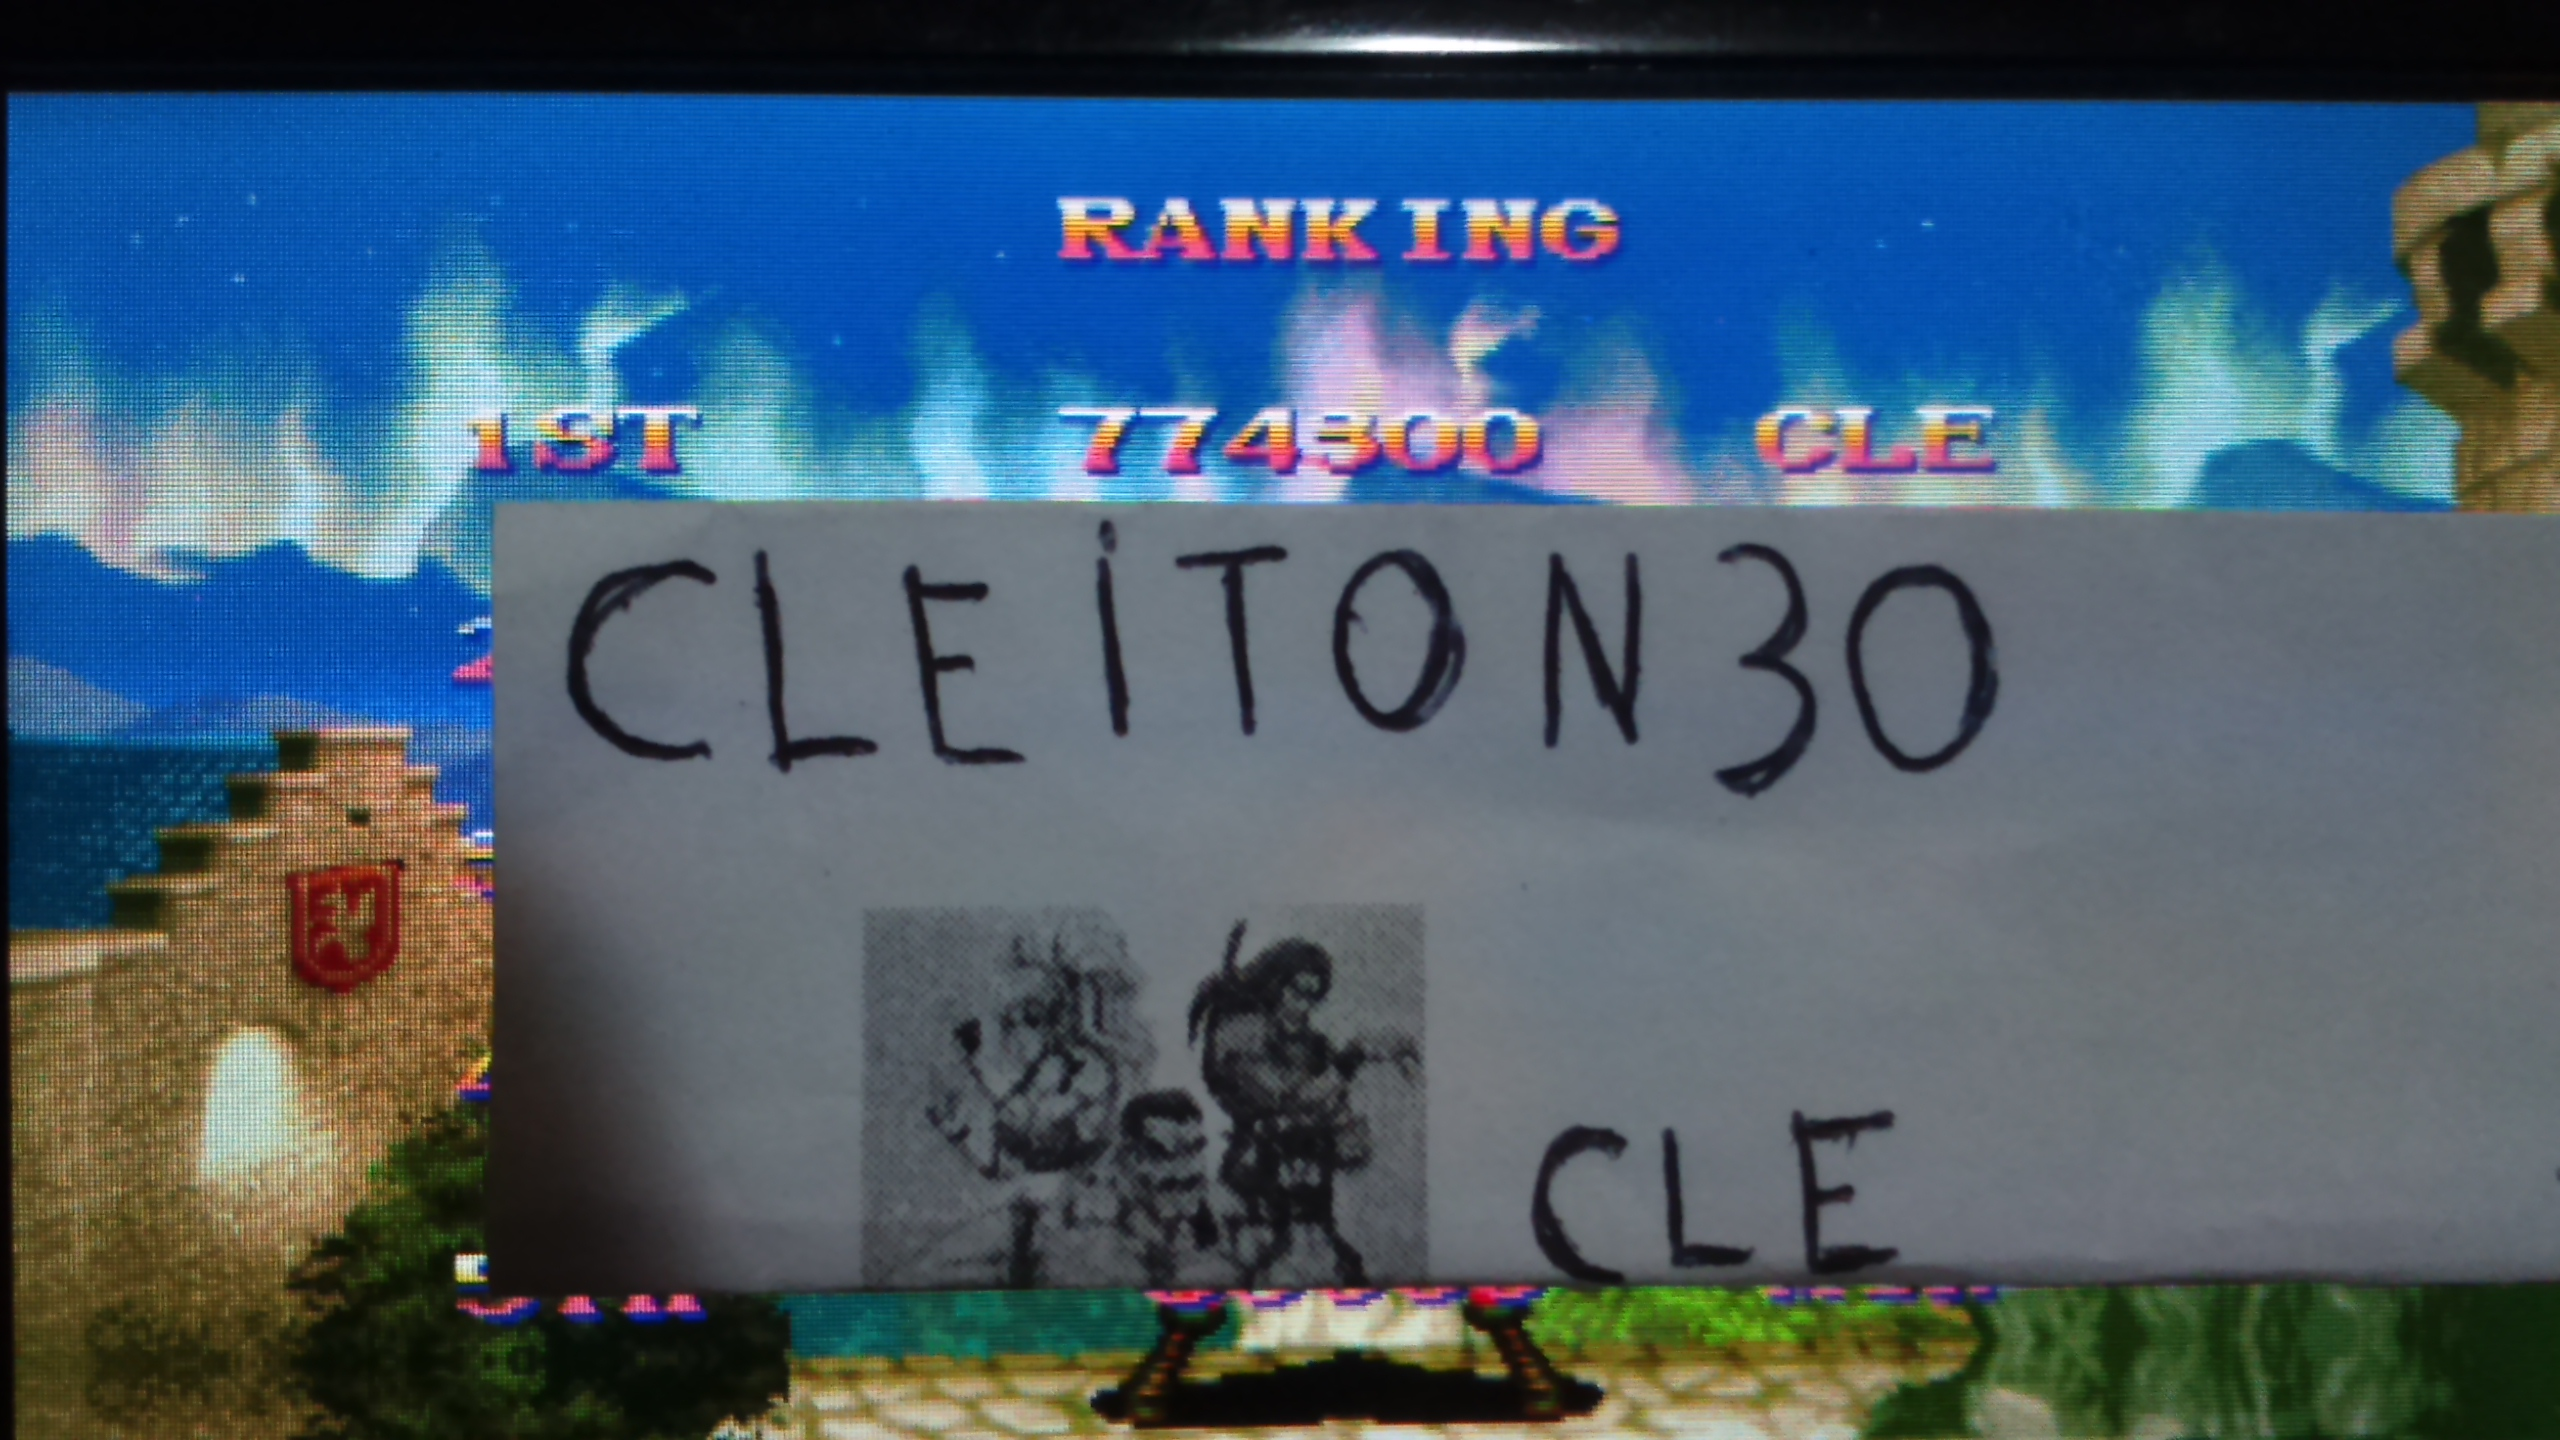 Cleiton30: Super Street Fighter II: The New Challengers [ssf2] (Arcade Emulated / M.A.M.E.) 774,300 points on 2016-05-22 21:34:10